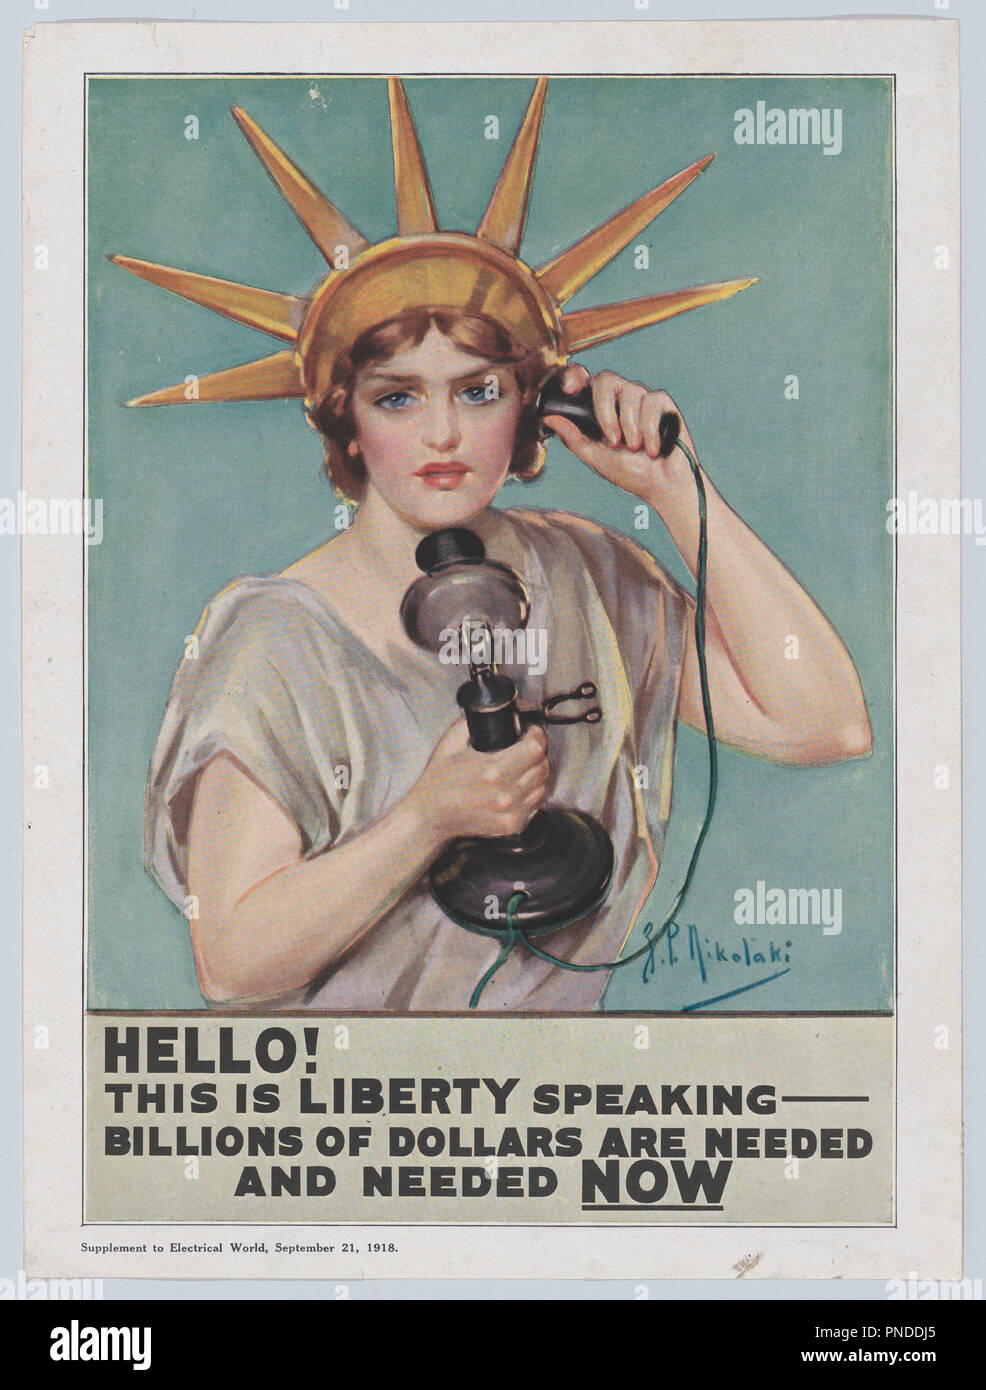 Hello! This is Liberty Speaking - Billions of Dollars Needed and Needed NOW. Artist: Z. P. Nikolaki (American, active ca. 1921). Dimensions: Sheet: 12 × 9 in. (30.5 × 22.8 cm). Publisher: Electrical World. Date: 1918. Museum: Metropolitan Museum of Art, New York, USA. - Stock Image